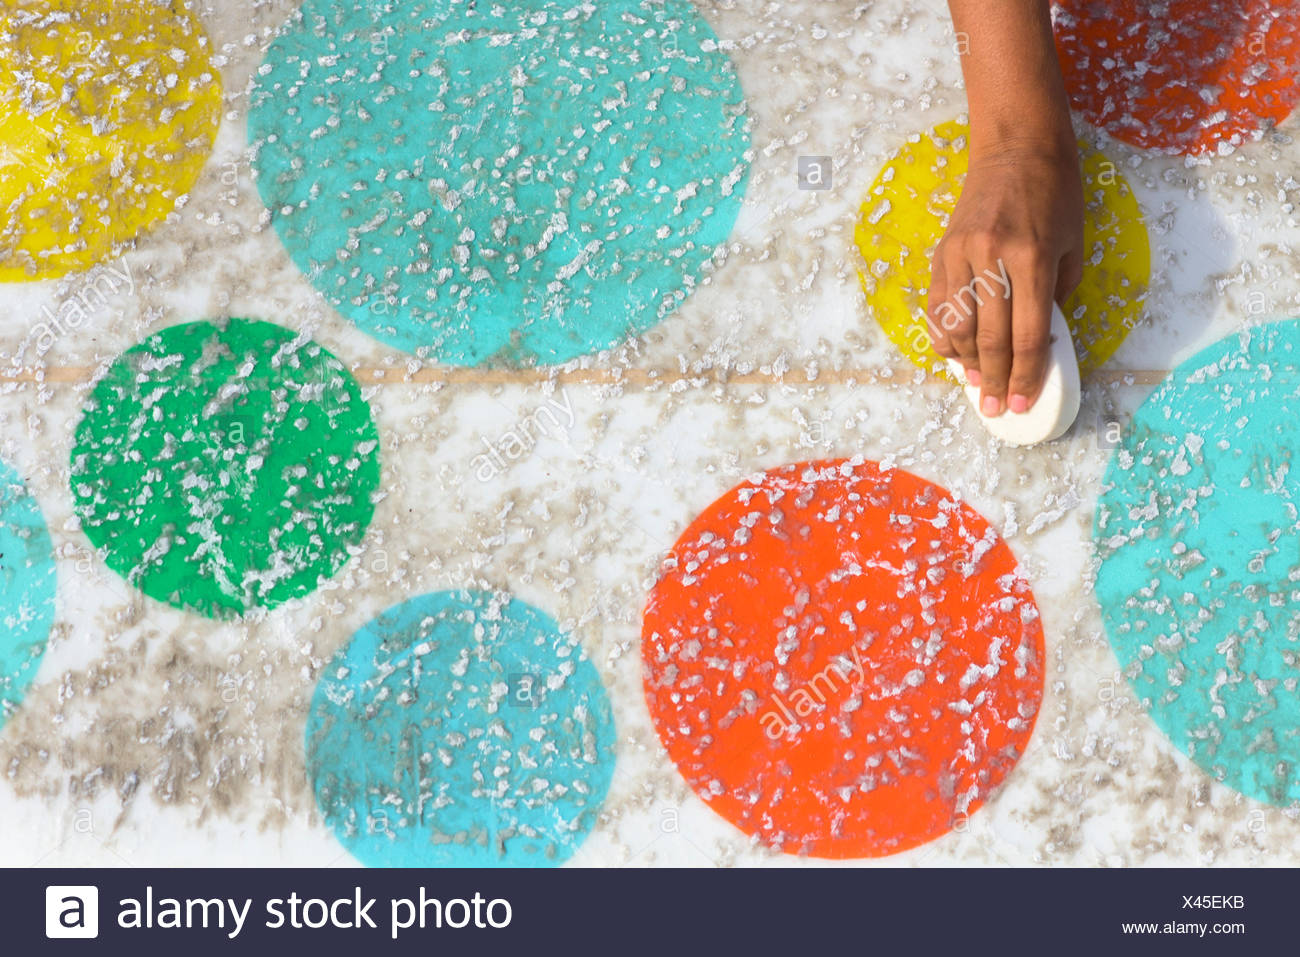 Vanessa Yeager waxes her colorful longboard surfboard in Newport Beach, Calif. - Stock Image